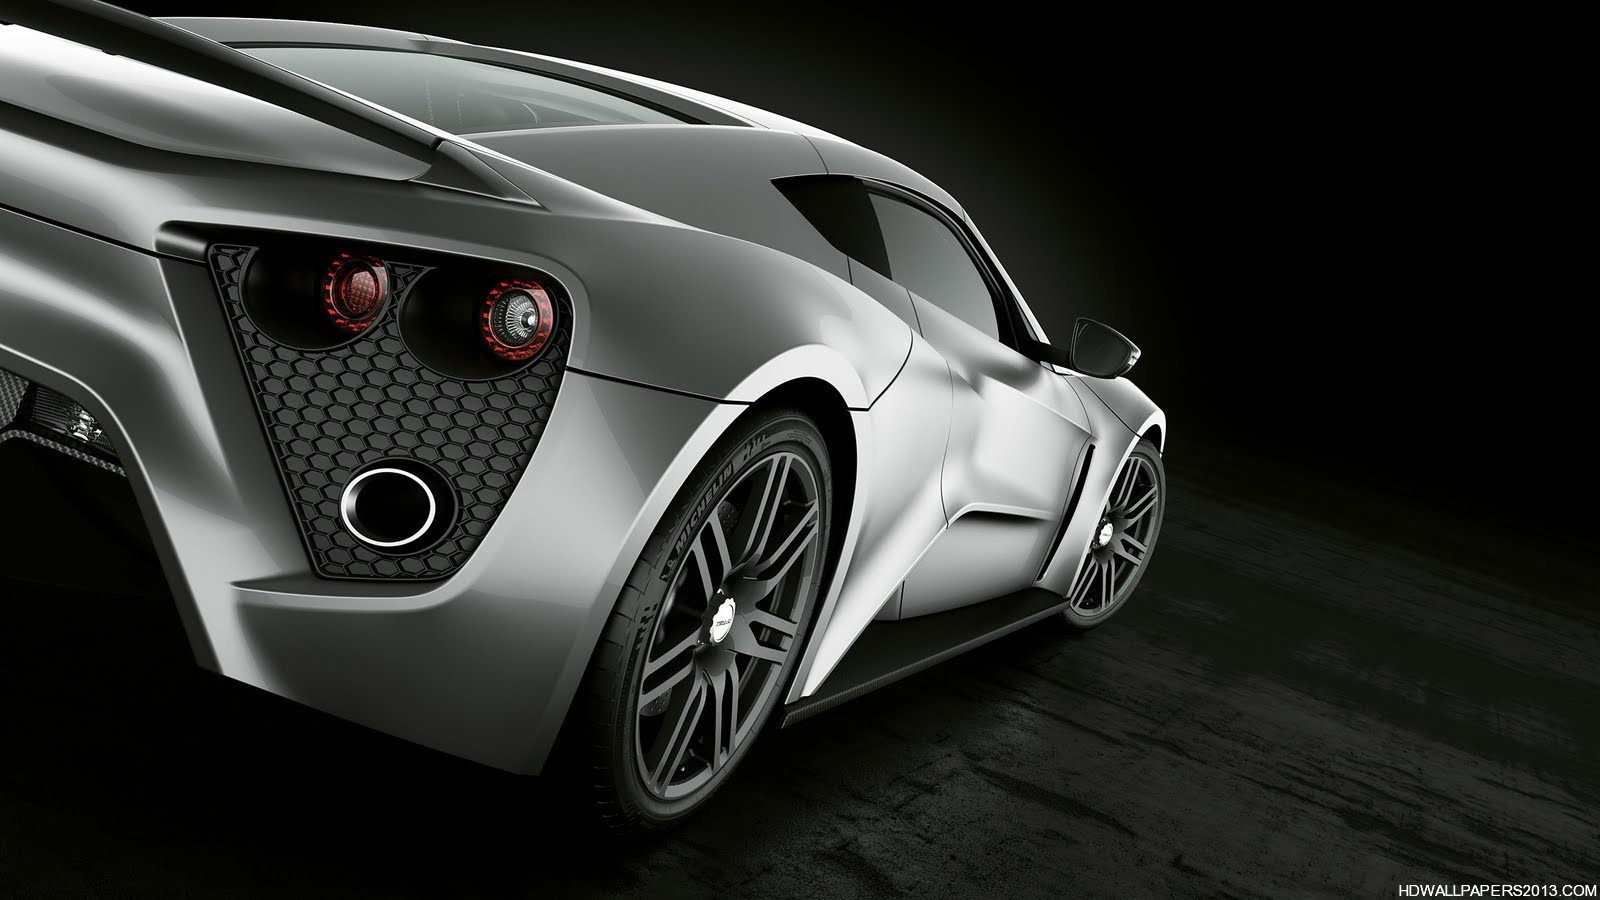 Top Hd Wallpapers Cars Wallpapers Desktop Hd: High Definition Wallpapers, High